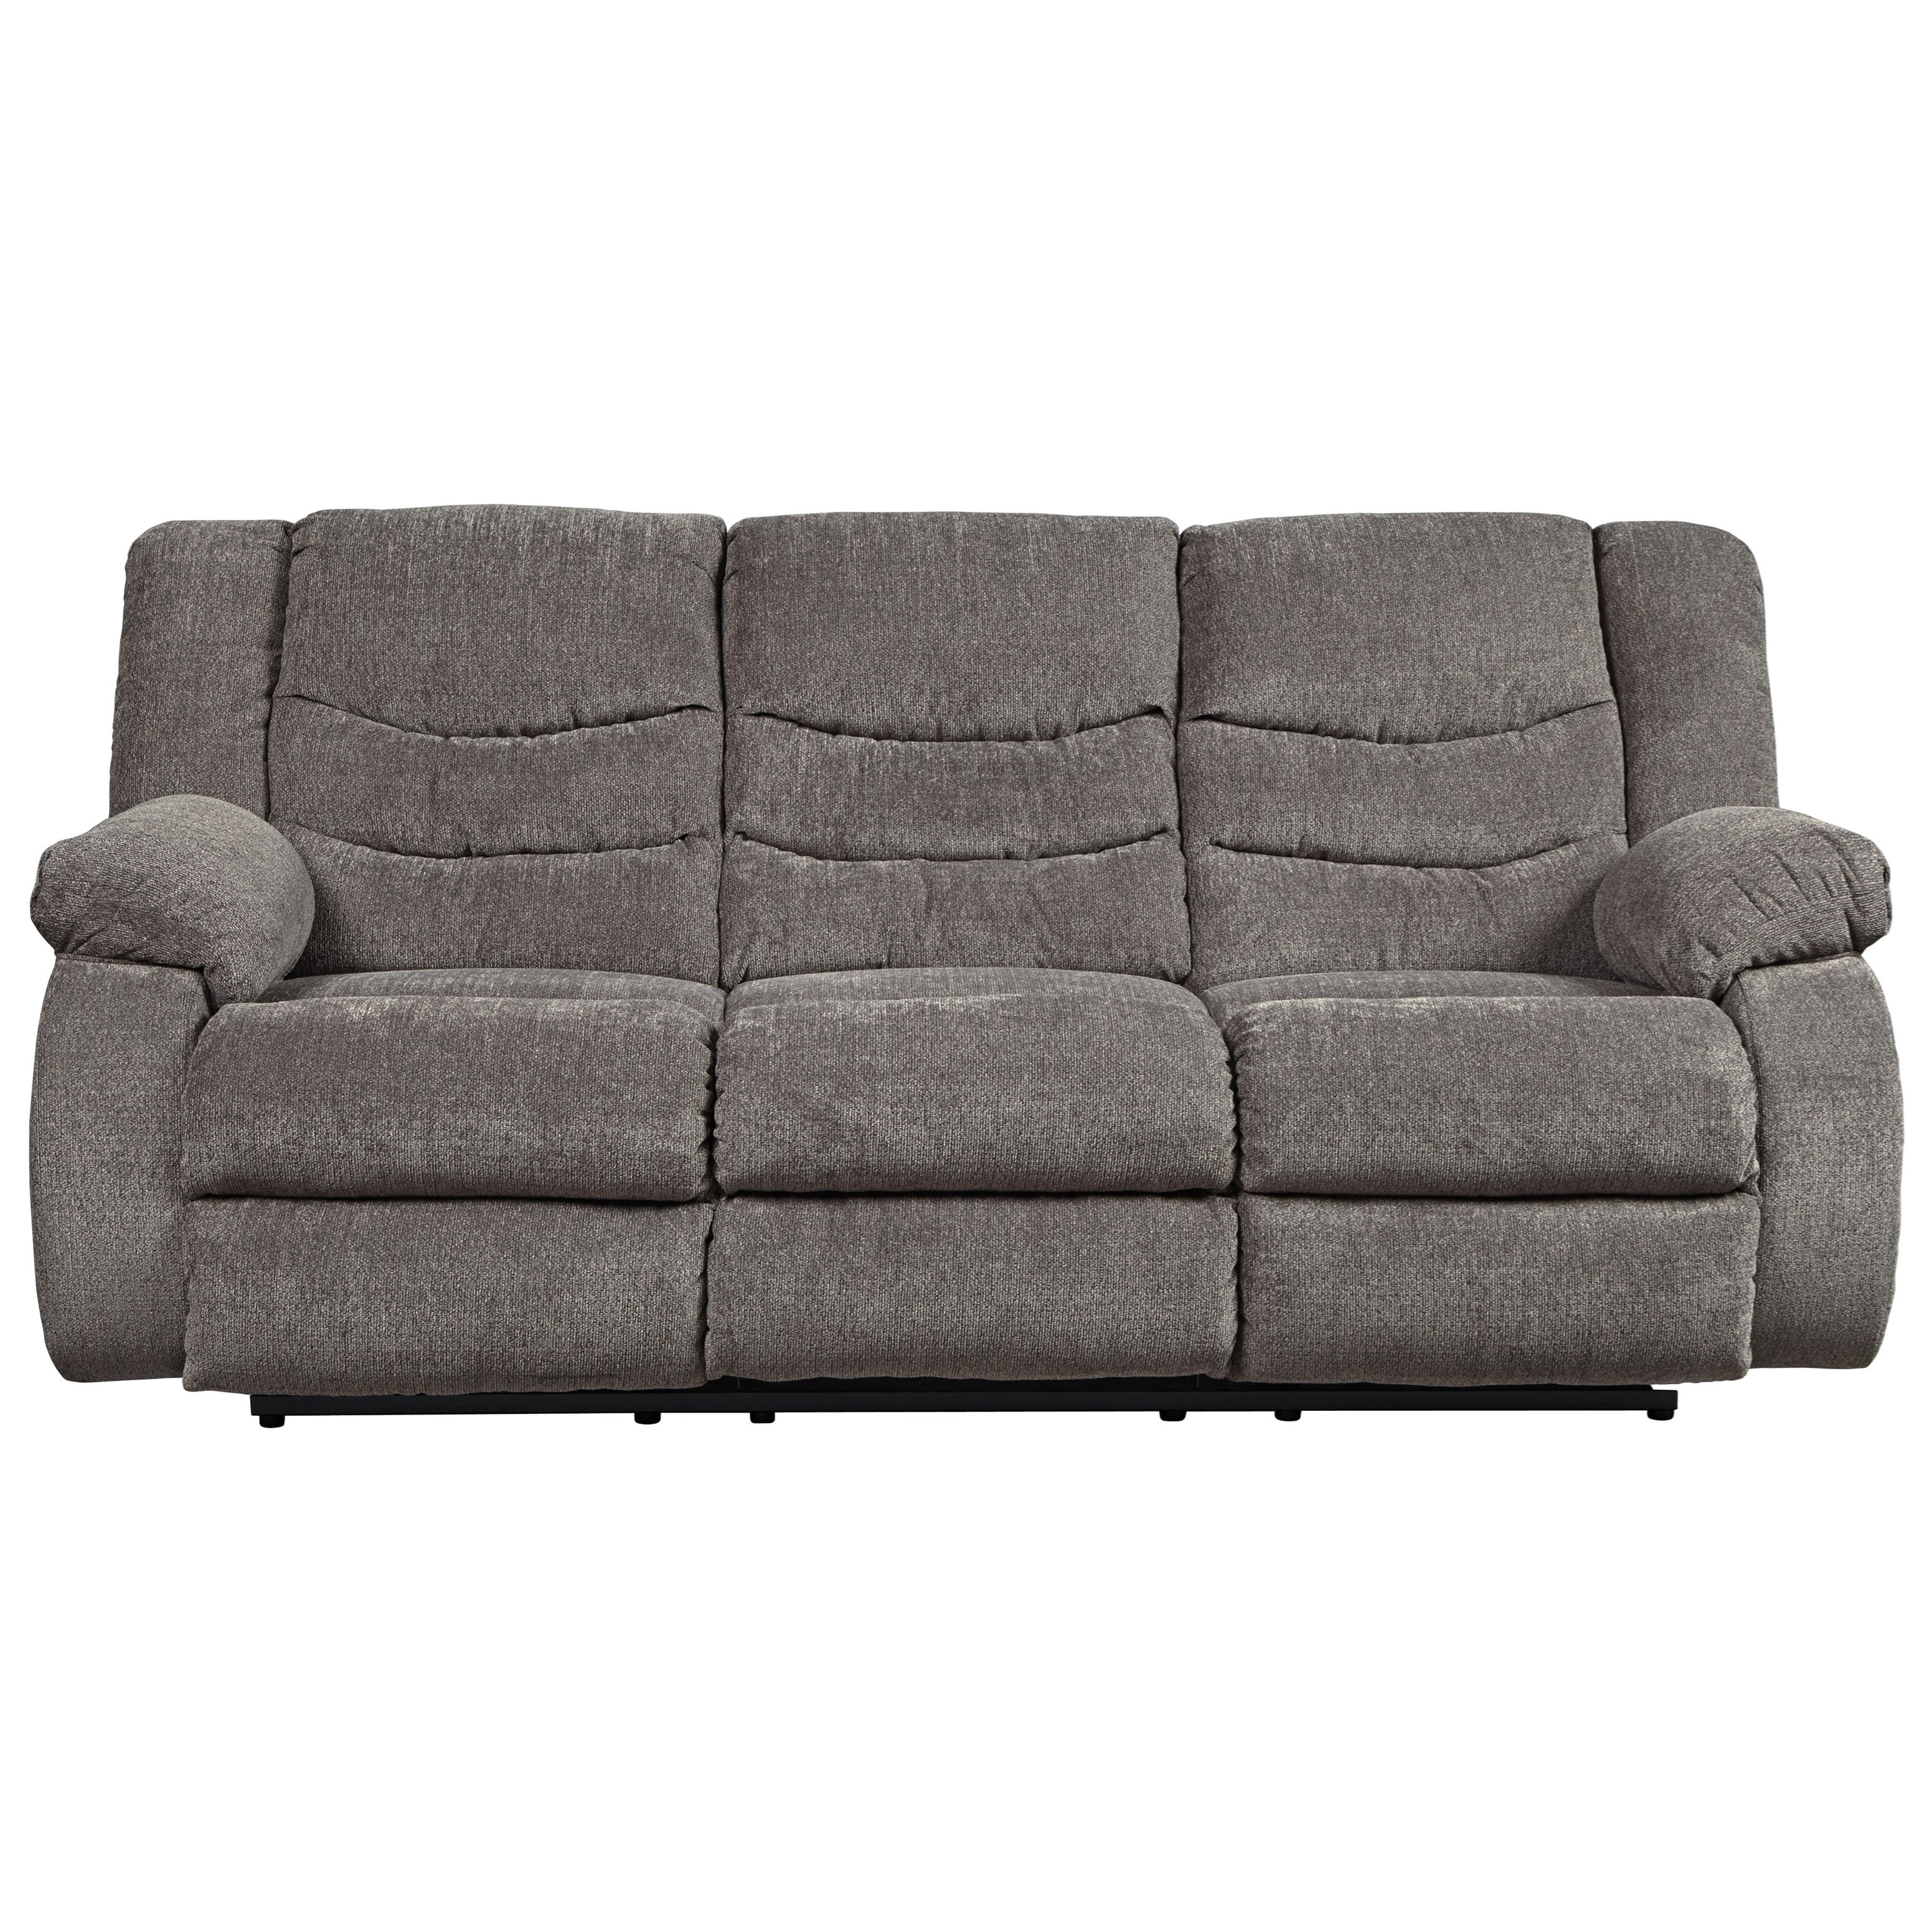 Tulen Reclining Sofa by Signature Design by Ashley at Zak's Warehouse Clearance Center